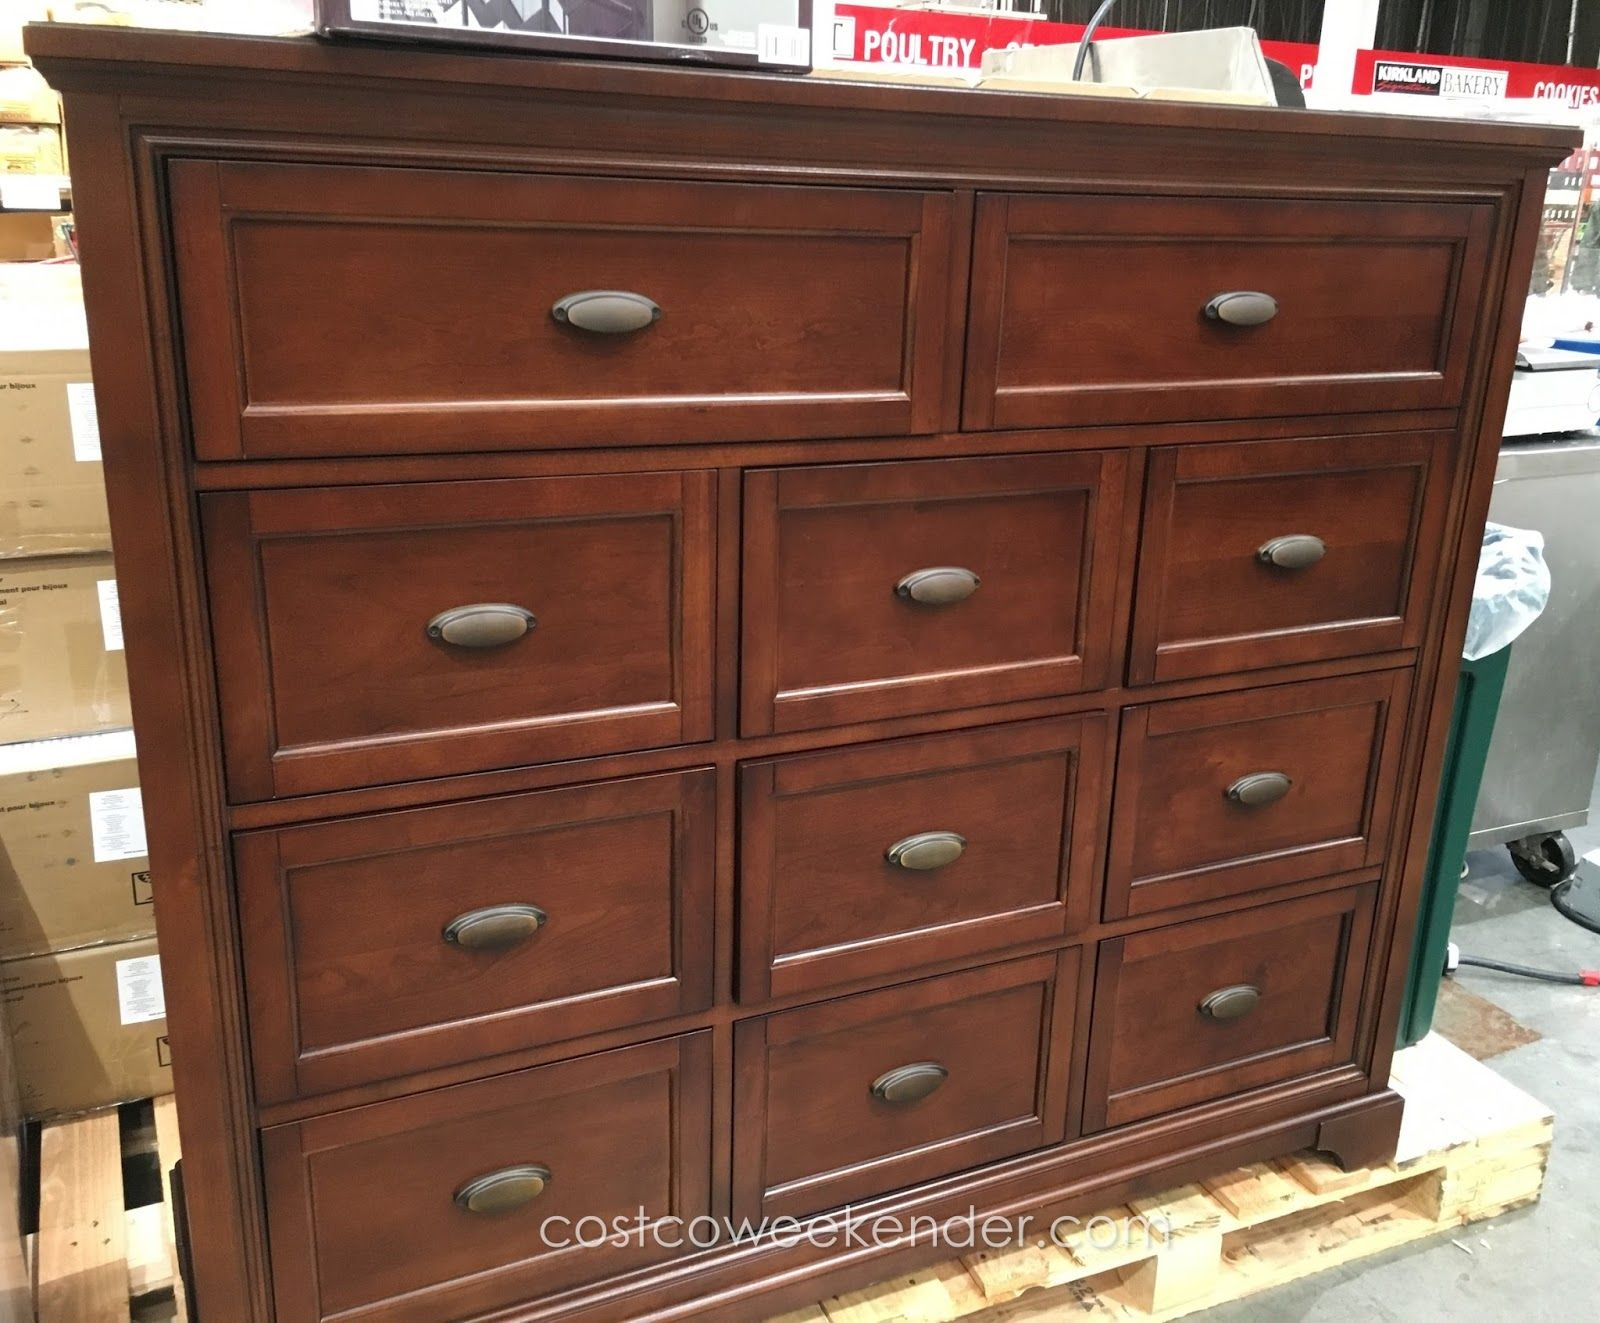 Universal Furniture Broadmoore Gentlemans Chest at Costco ...